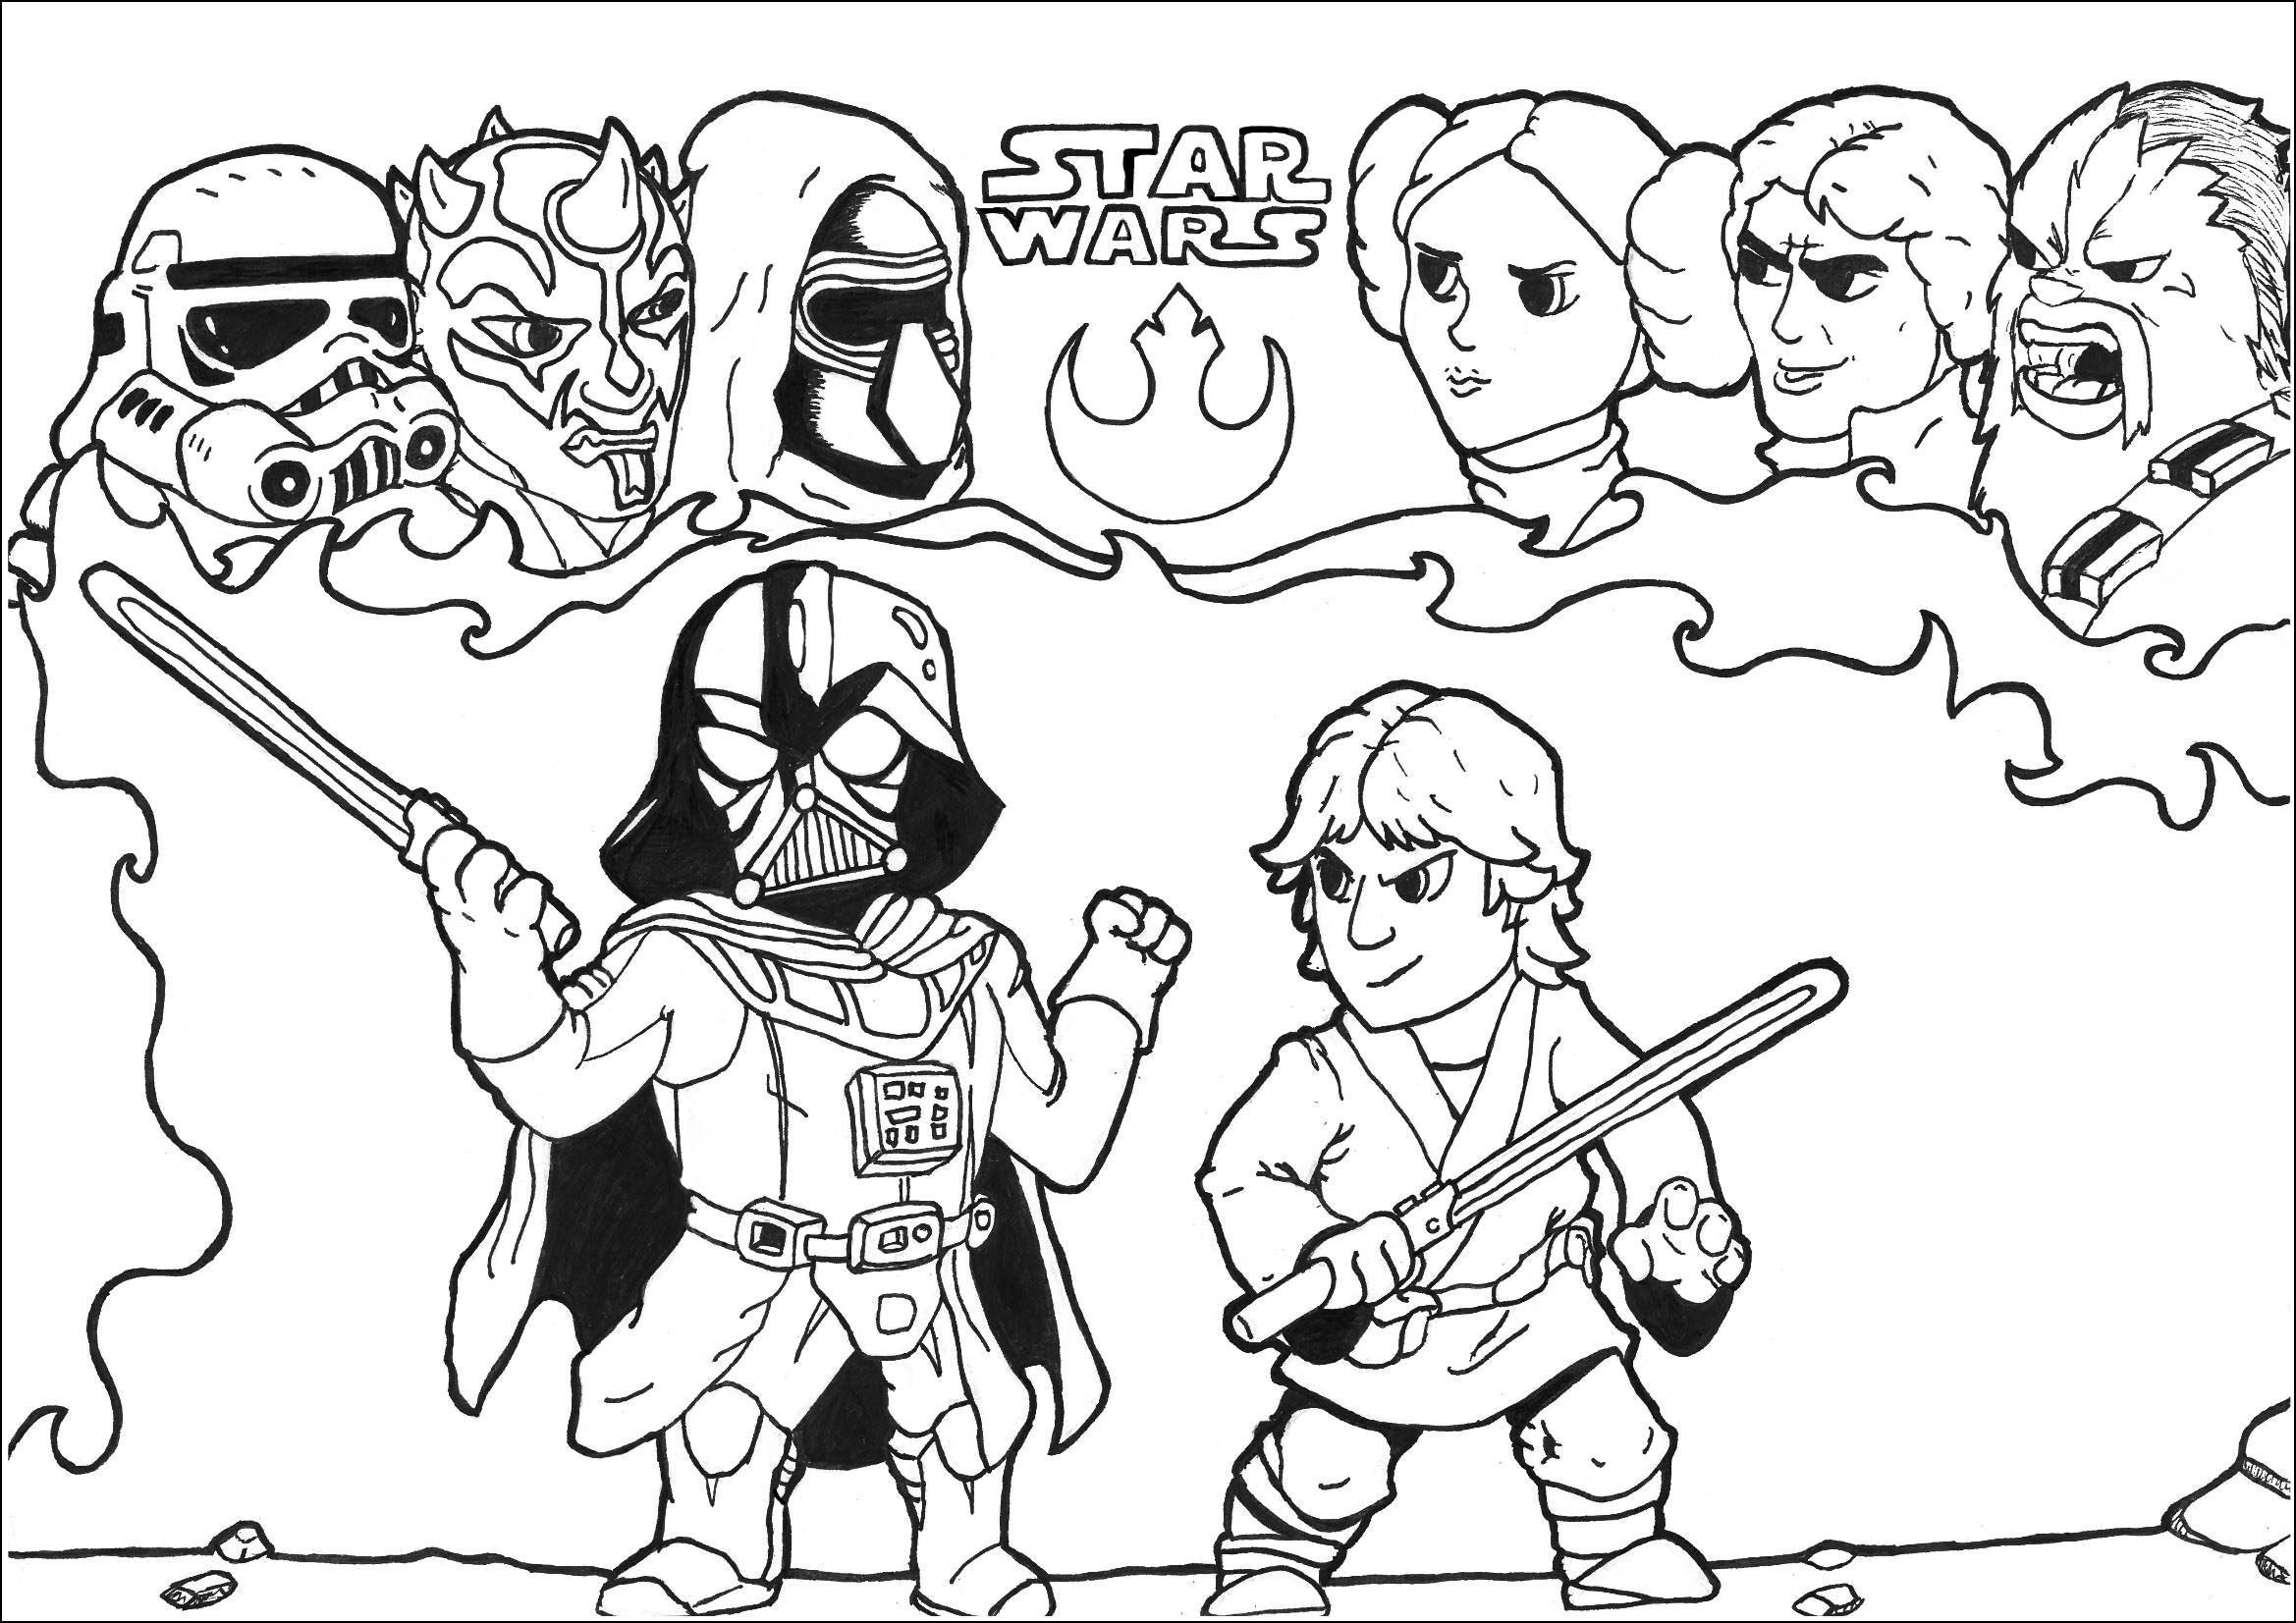 star wars coloring printables fashionably nerdy family star wars day may the fourth coloring wars star printables